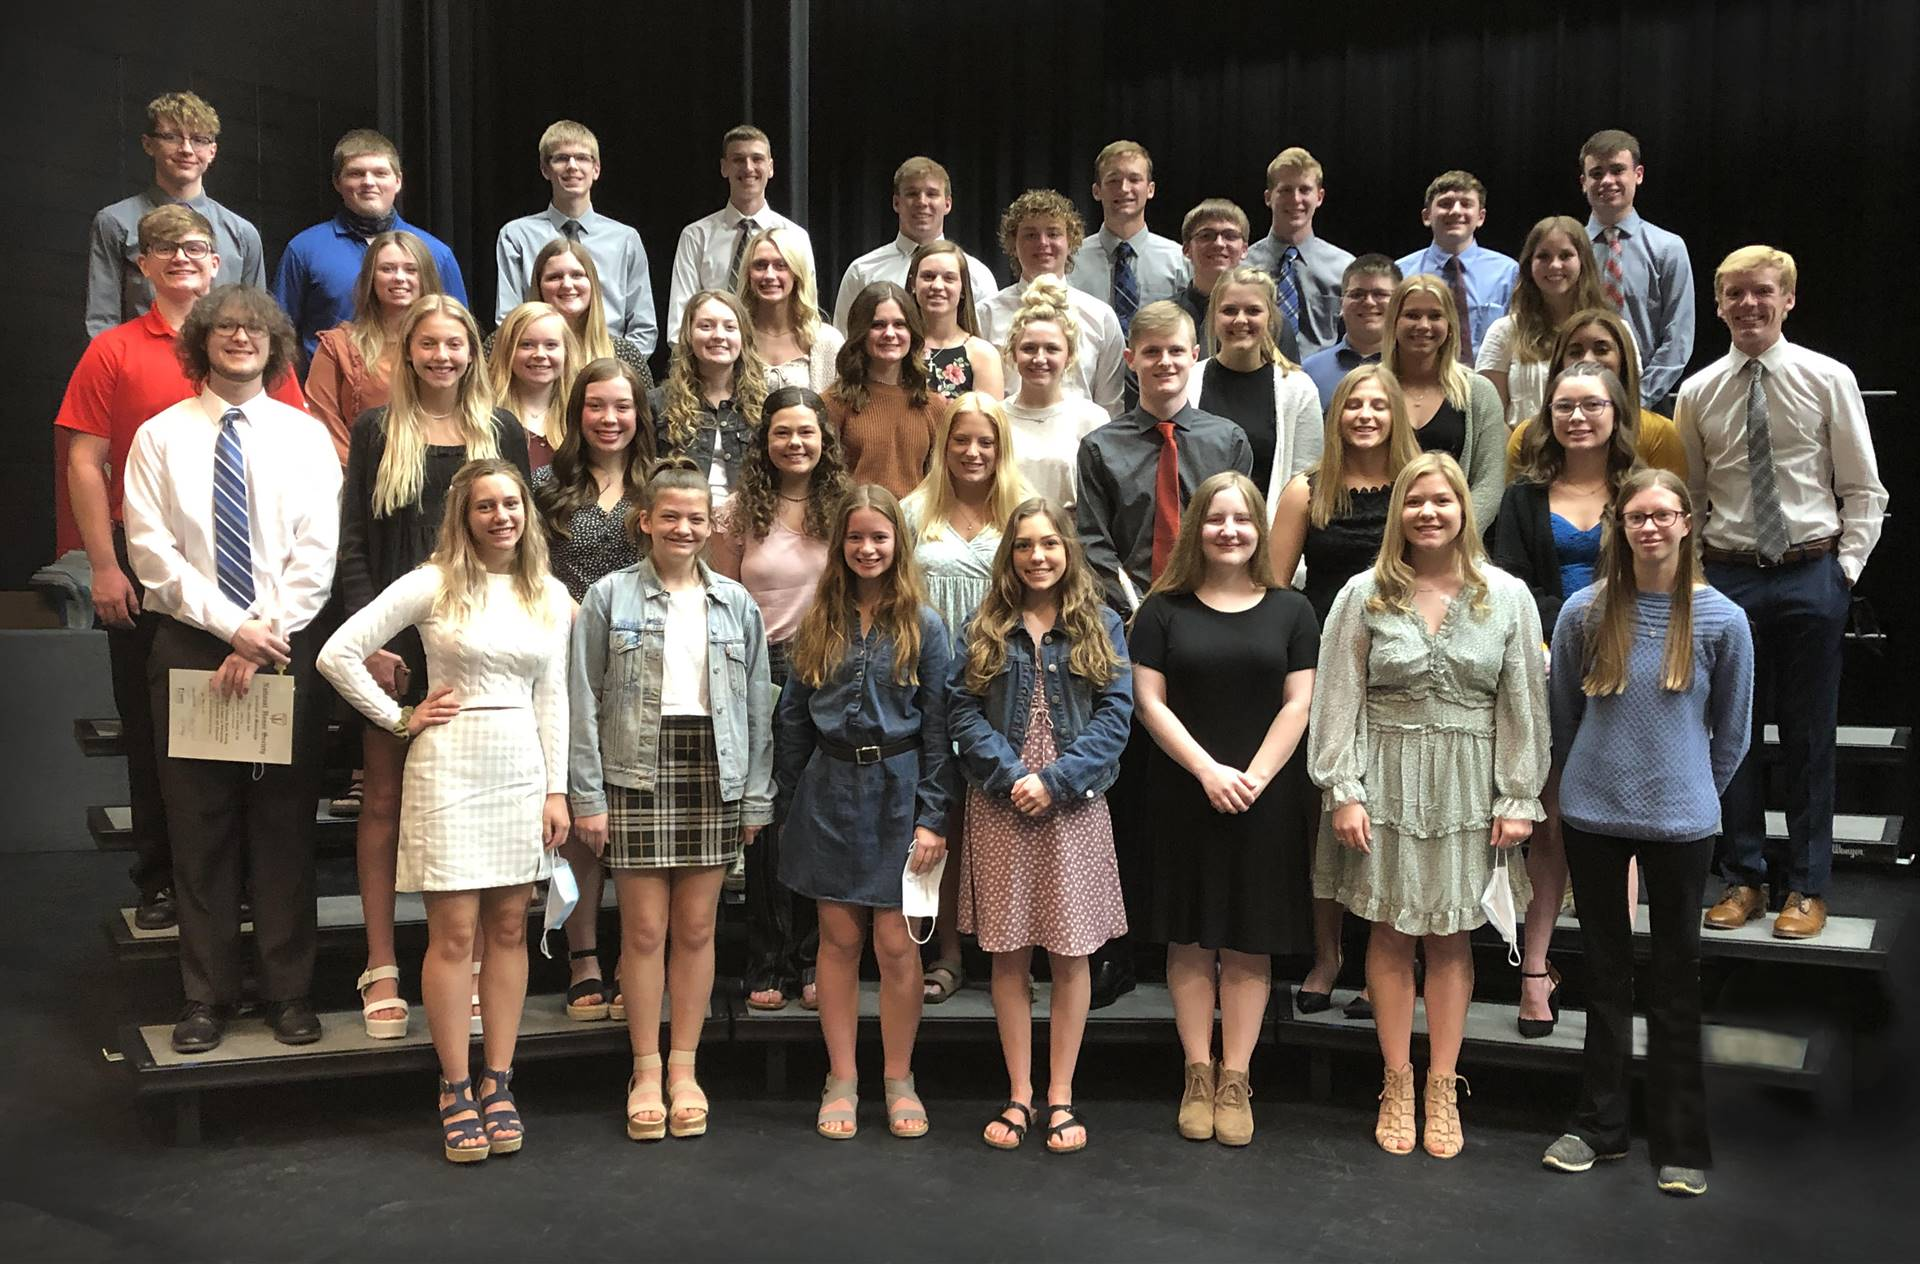 National Honor Society students posing for a group photo on risers